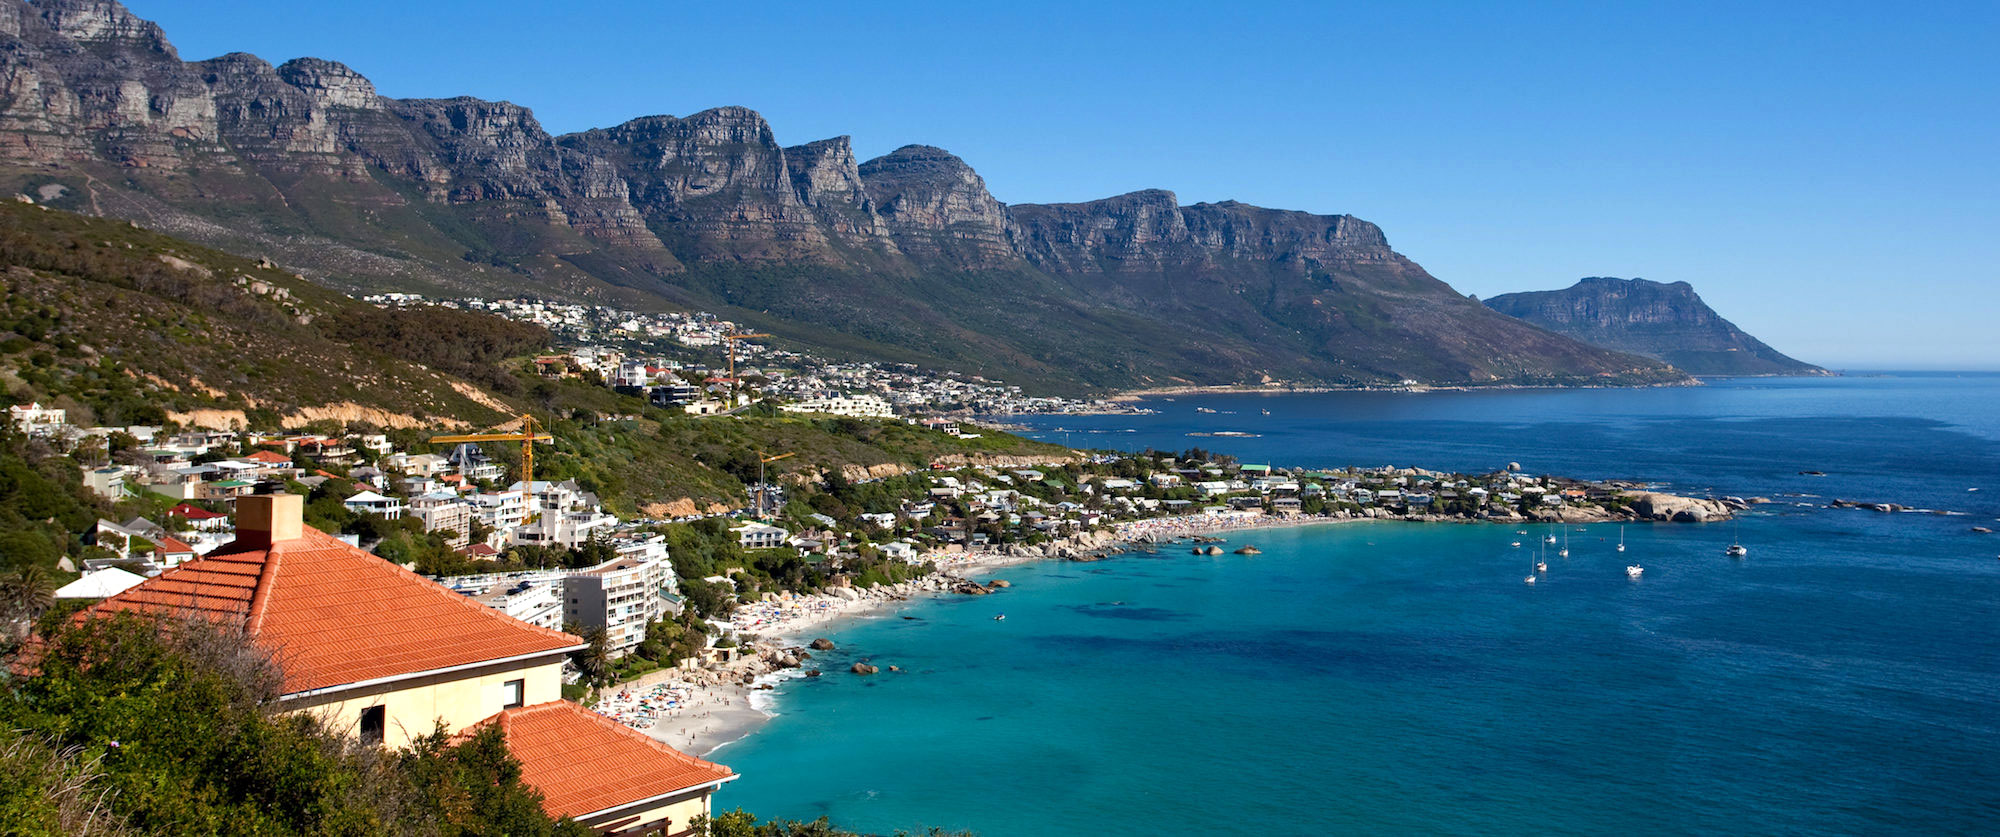 South Africa-Mauritius - Africa vacation packages